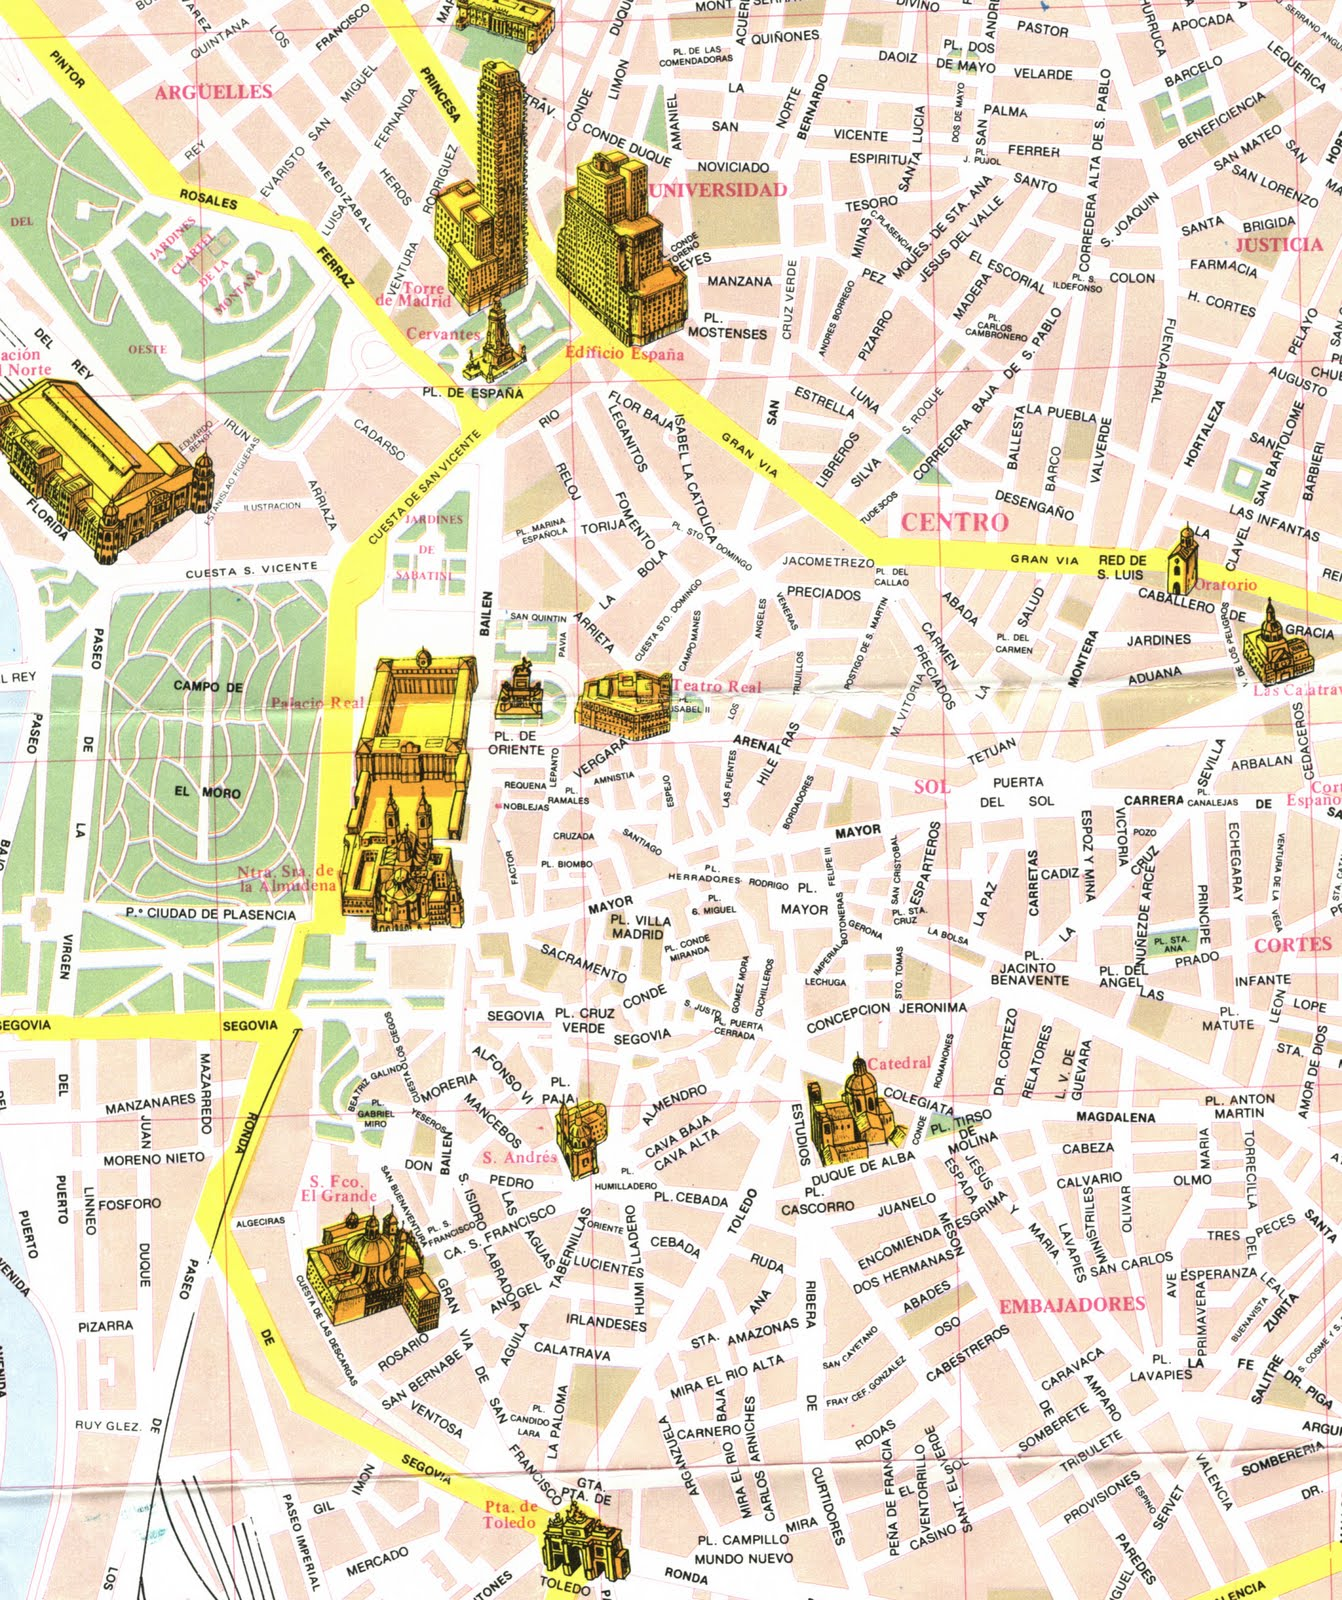 Madrid Spain Map Tourist.Gis Research And Map Collection Madrid Spain Maps Available From